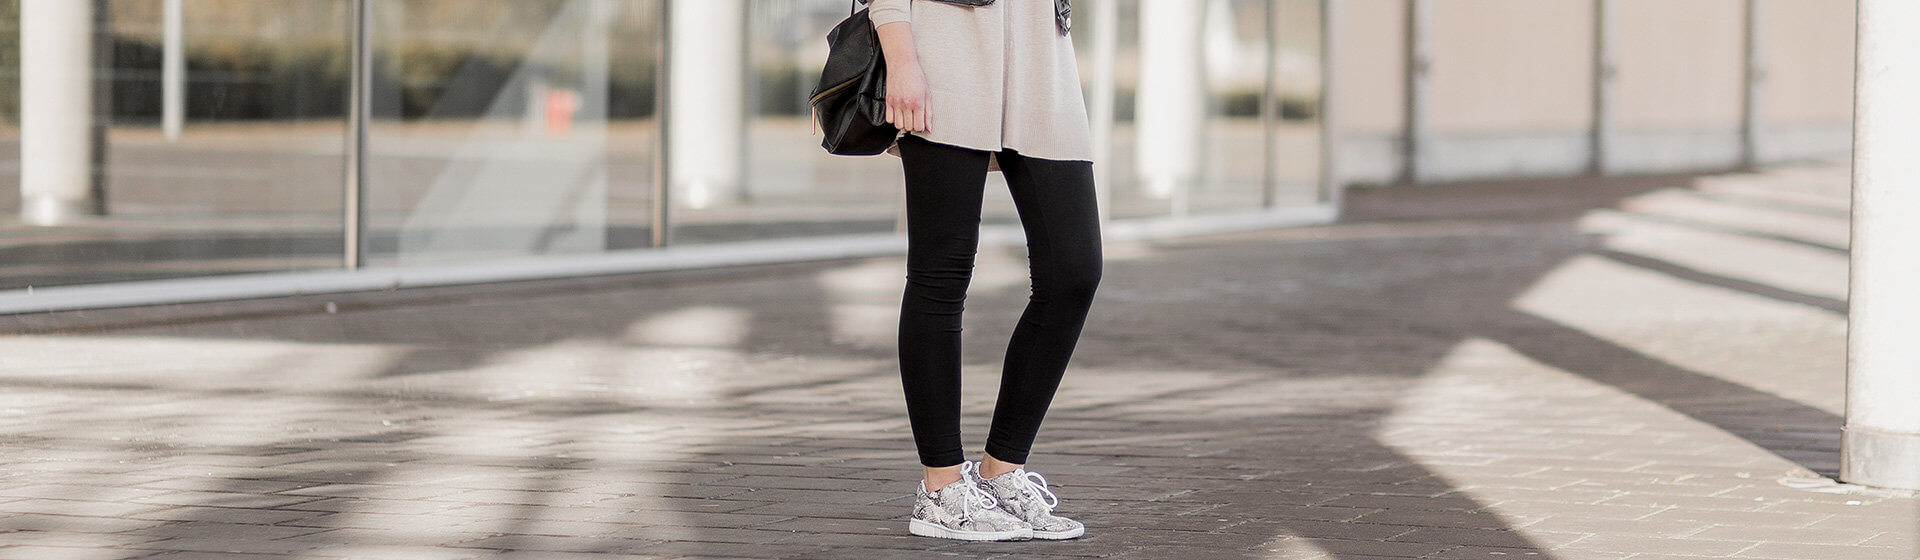 Leggings - Top oder Flop? Leggings kombinieren, Shoelove by Deichmann